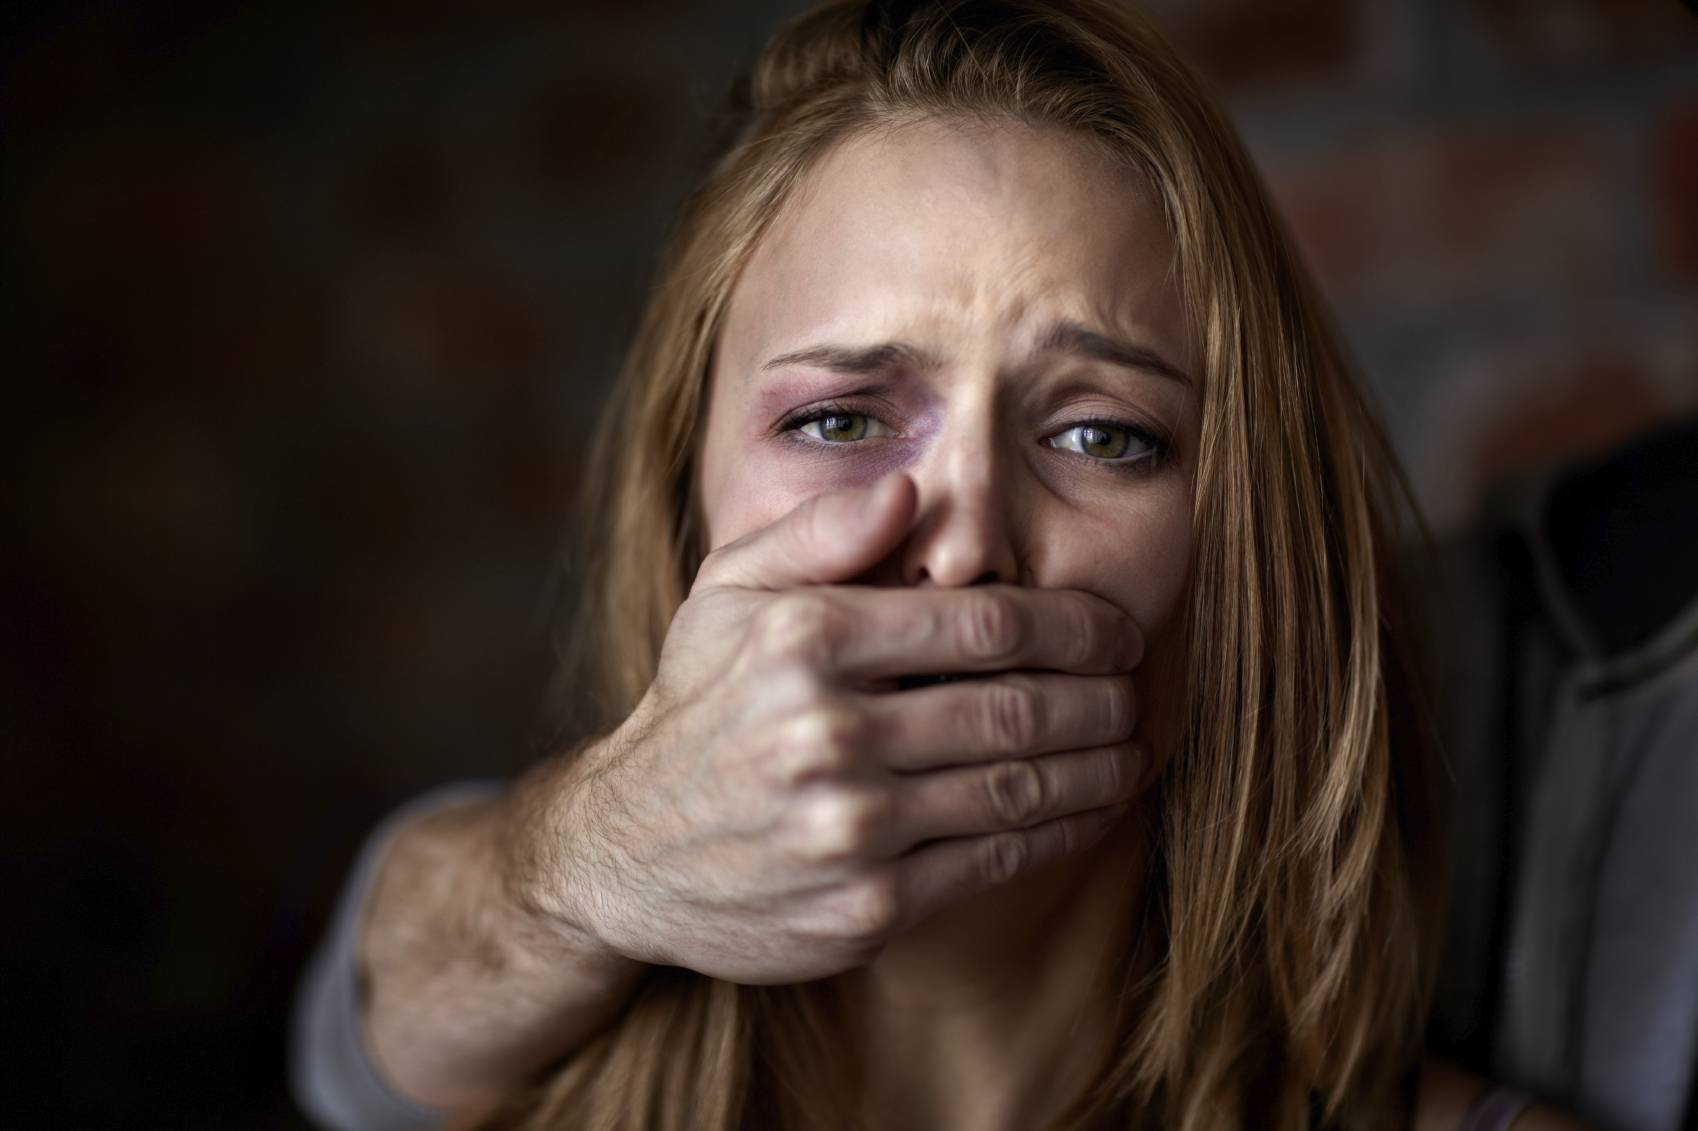 Abused young woman being silenced by her abuser